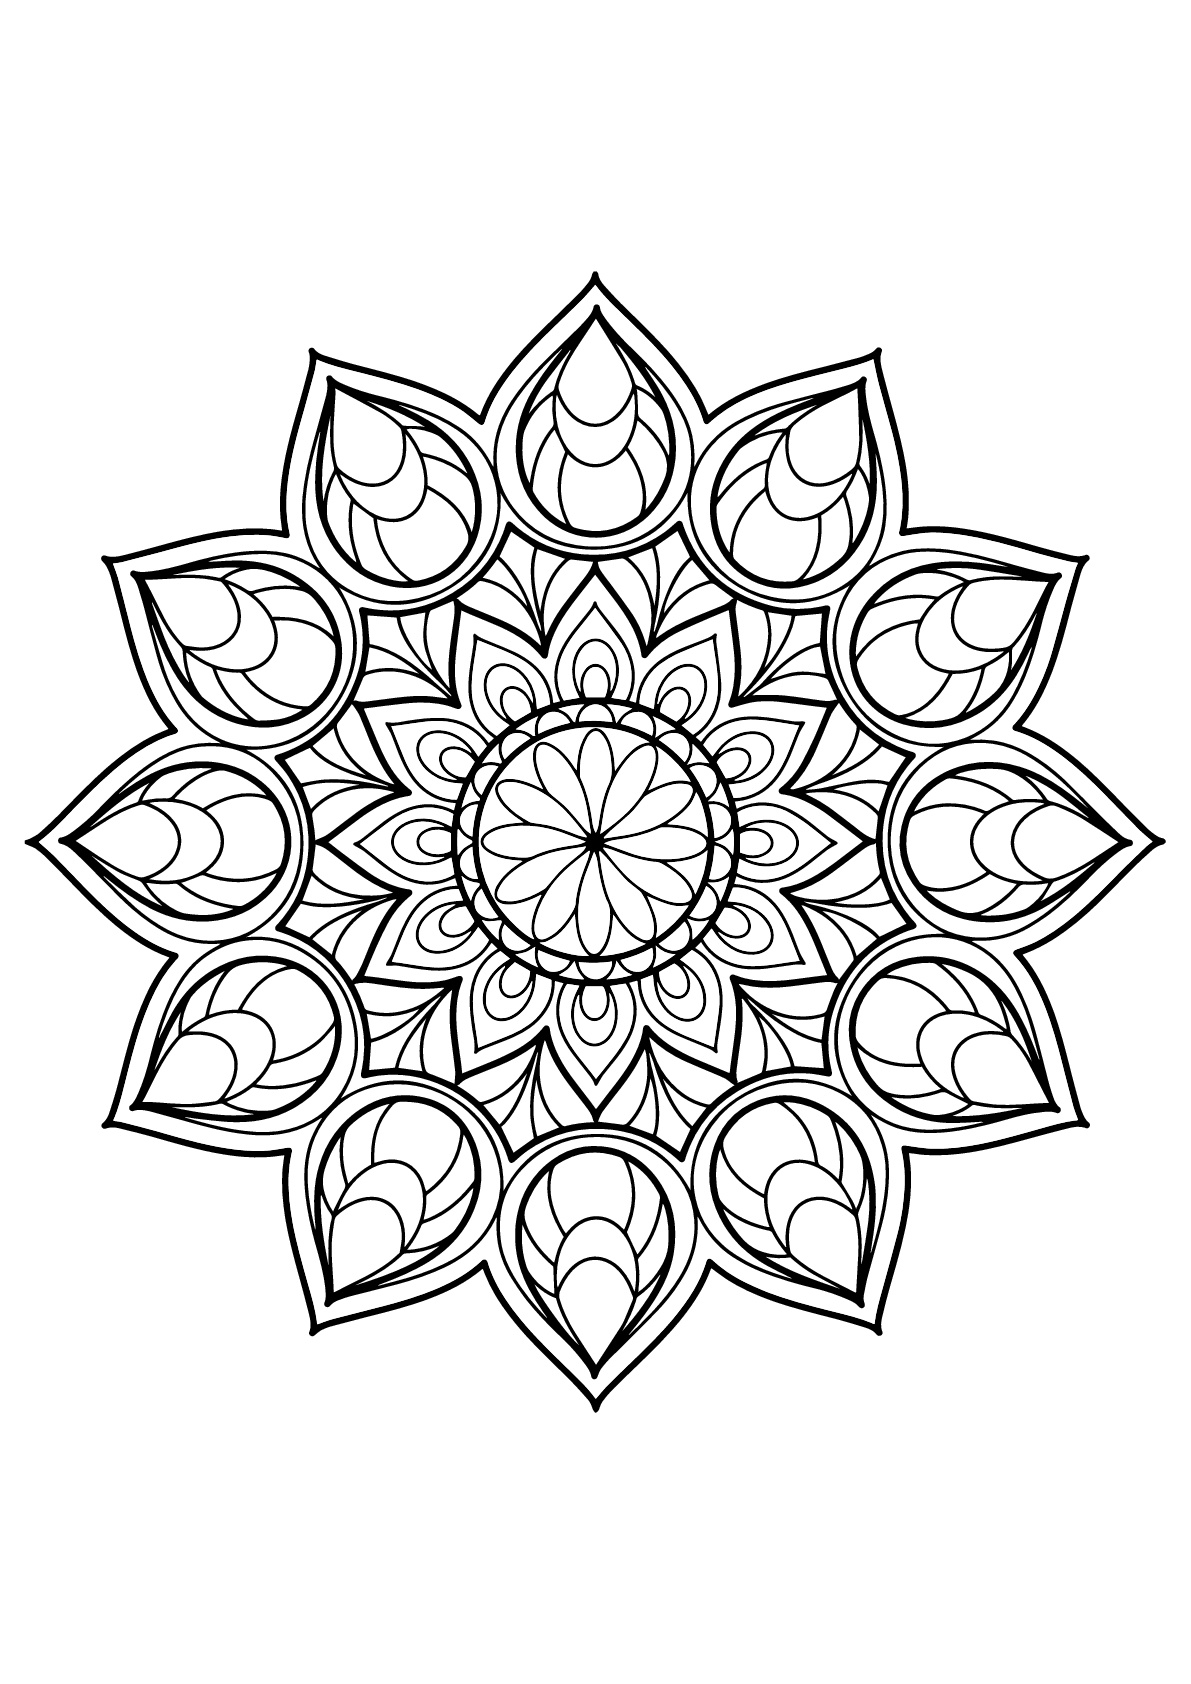 mandalas to color for adults free printable mandala coloring pages for adults at mandalas to for adults color